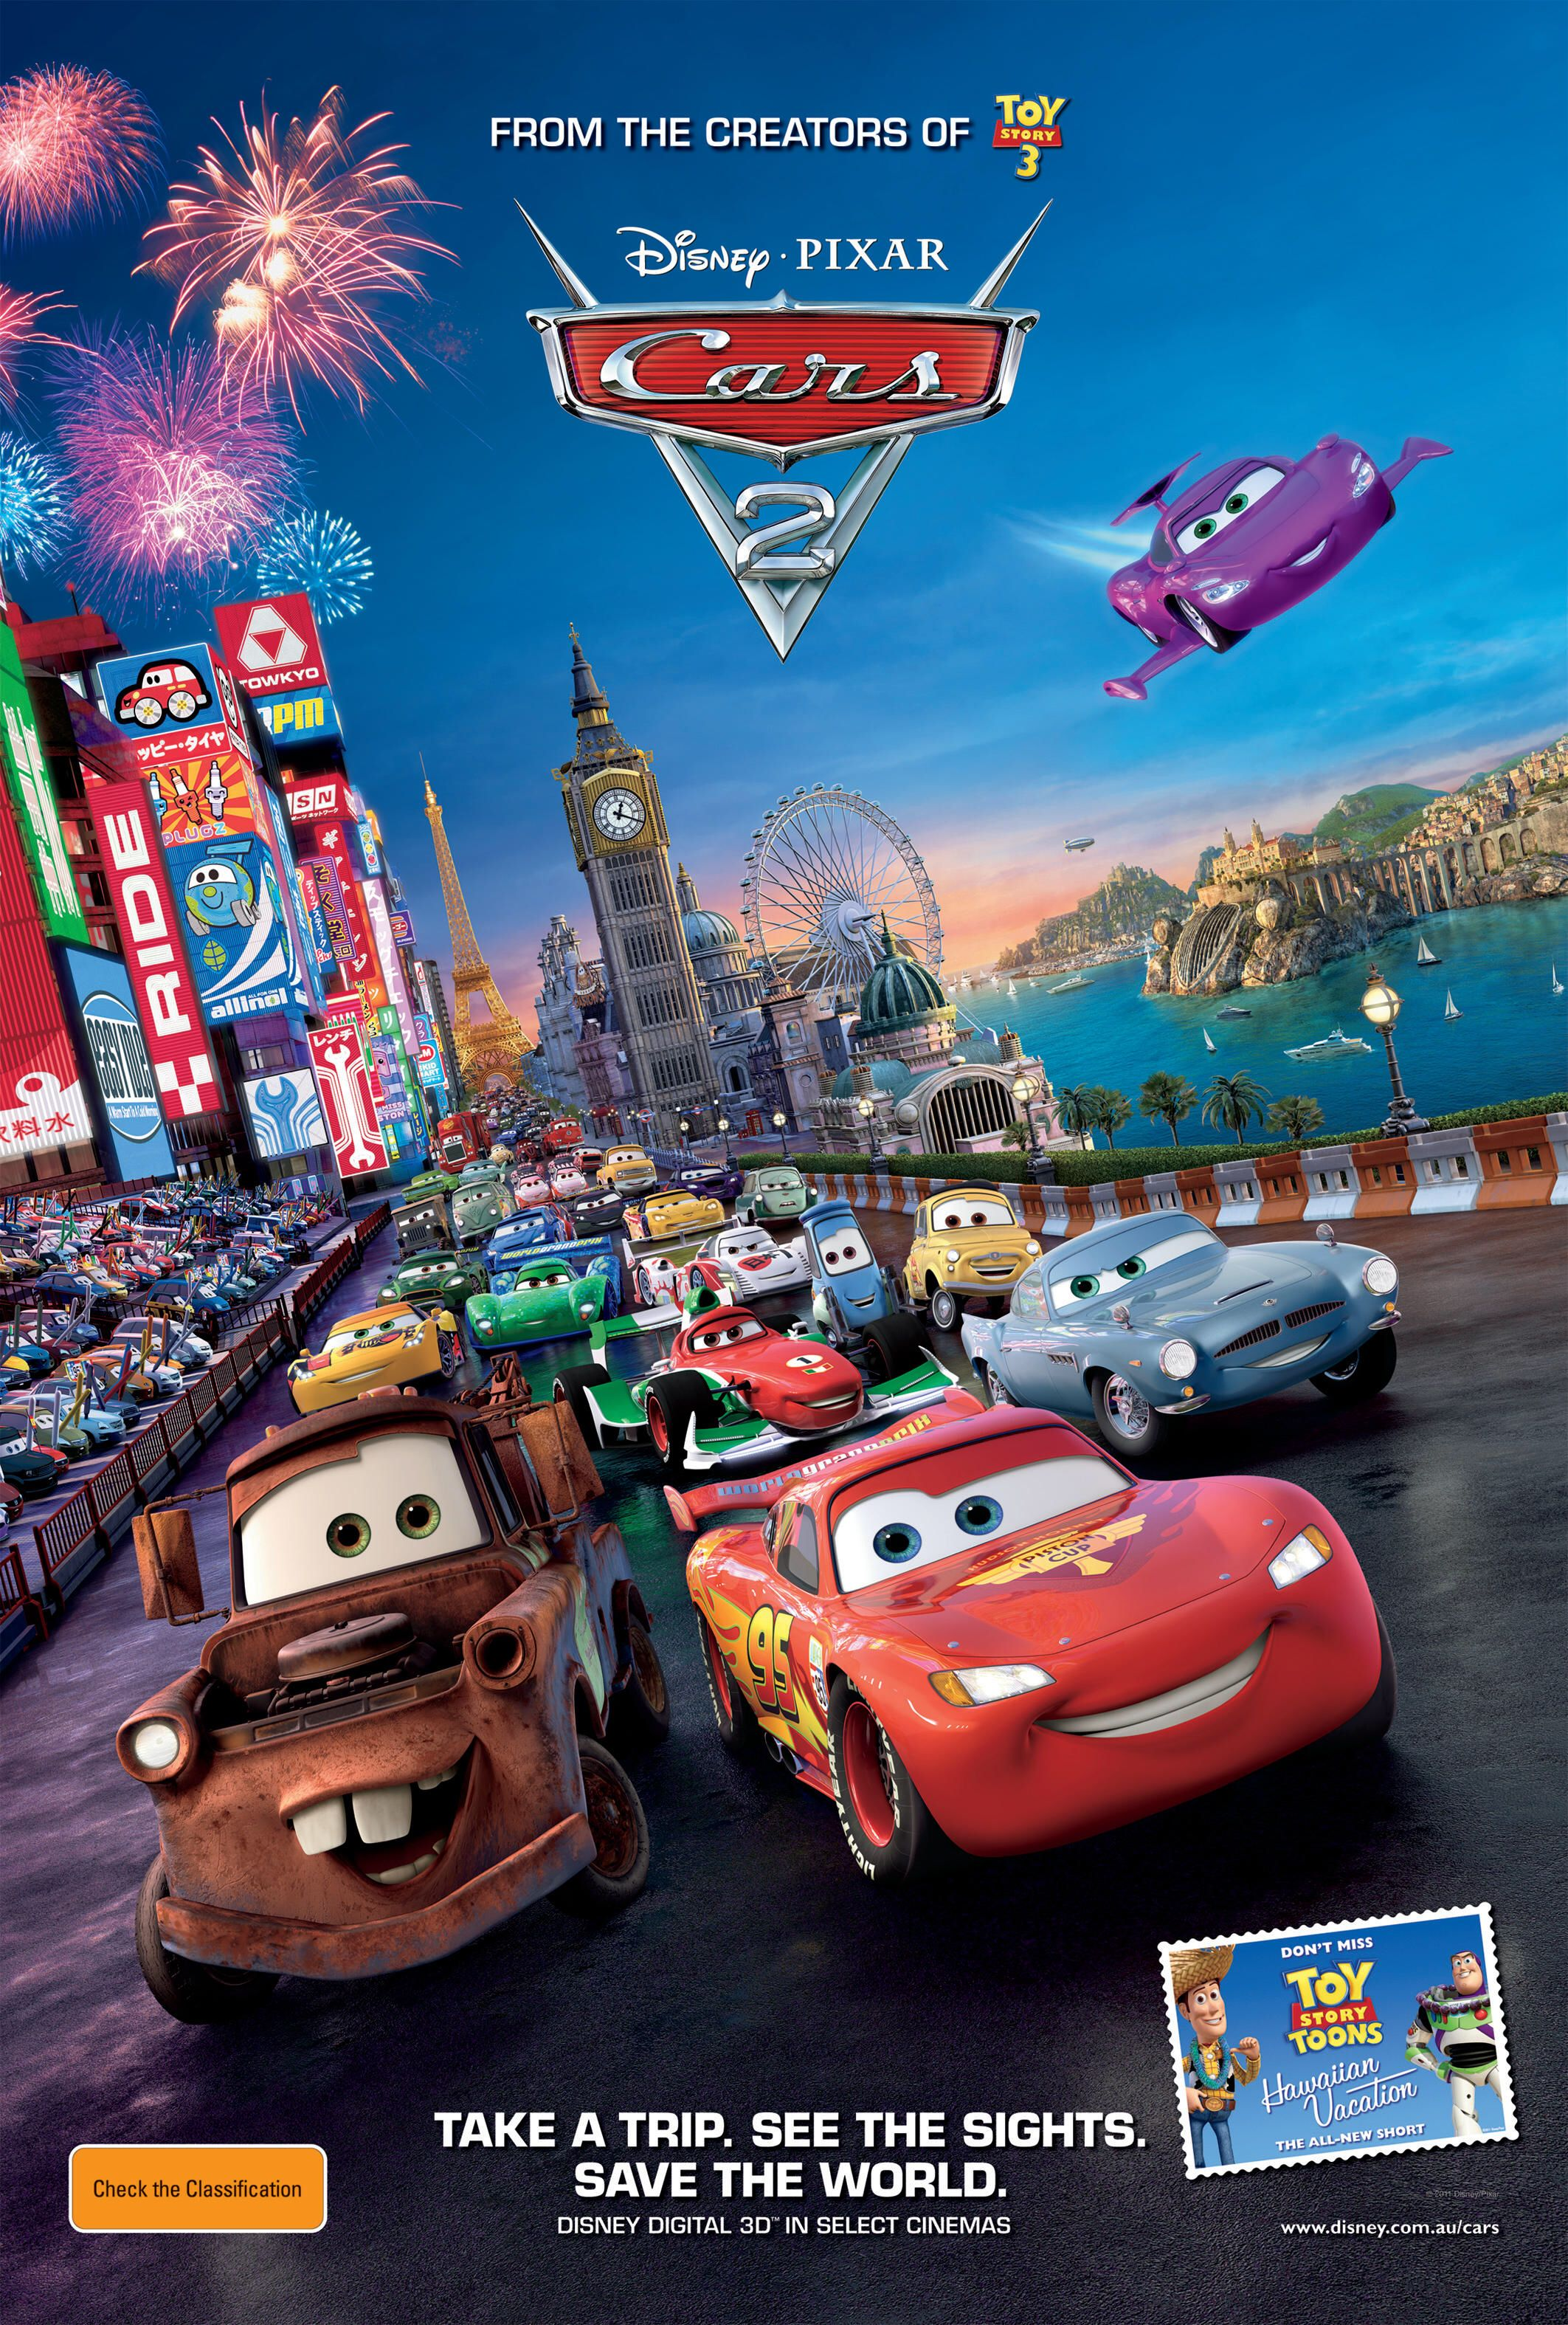 Cars 2 the movie online games motor city casino buffet hours